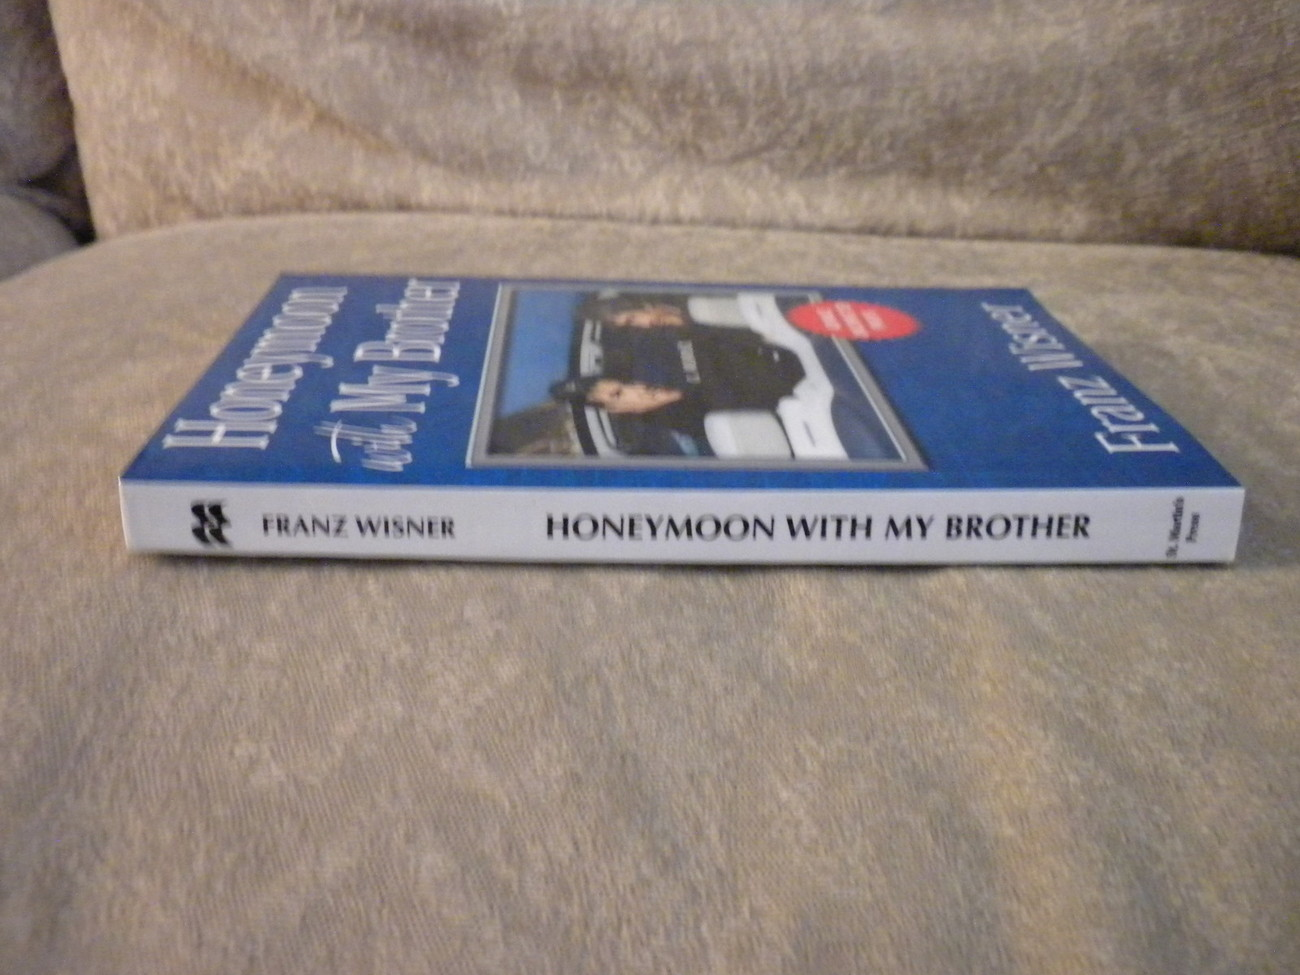 Advance Uncorrected Proofs Honeymoon With My Brother by Wisner 2005 1st full lin